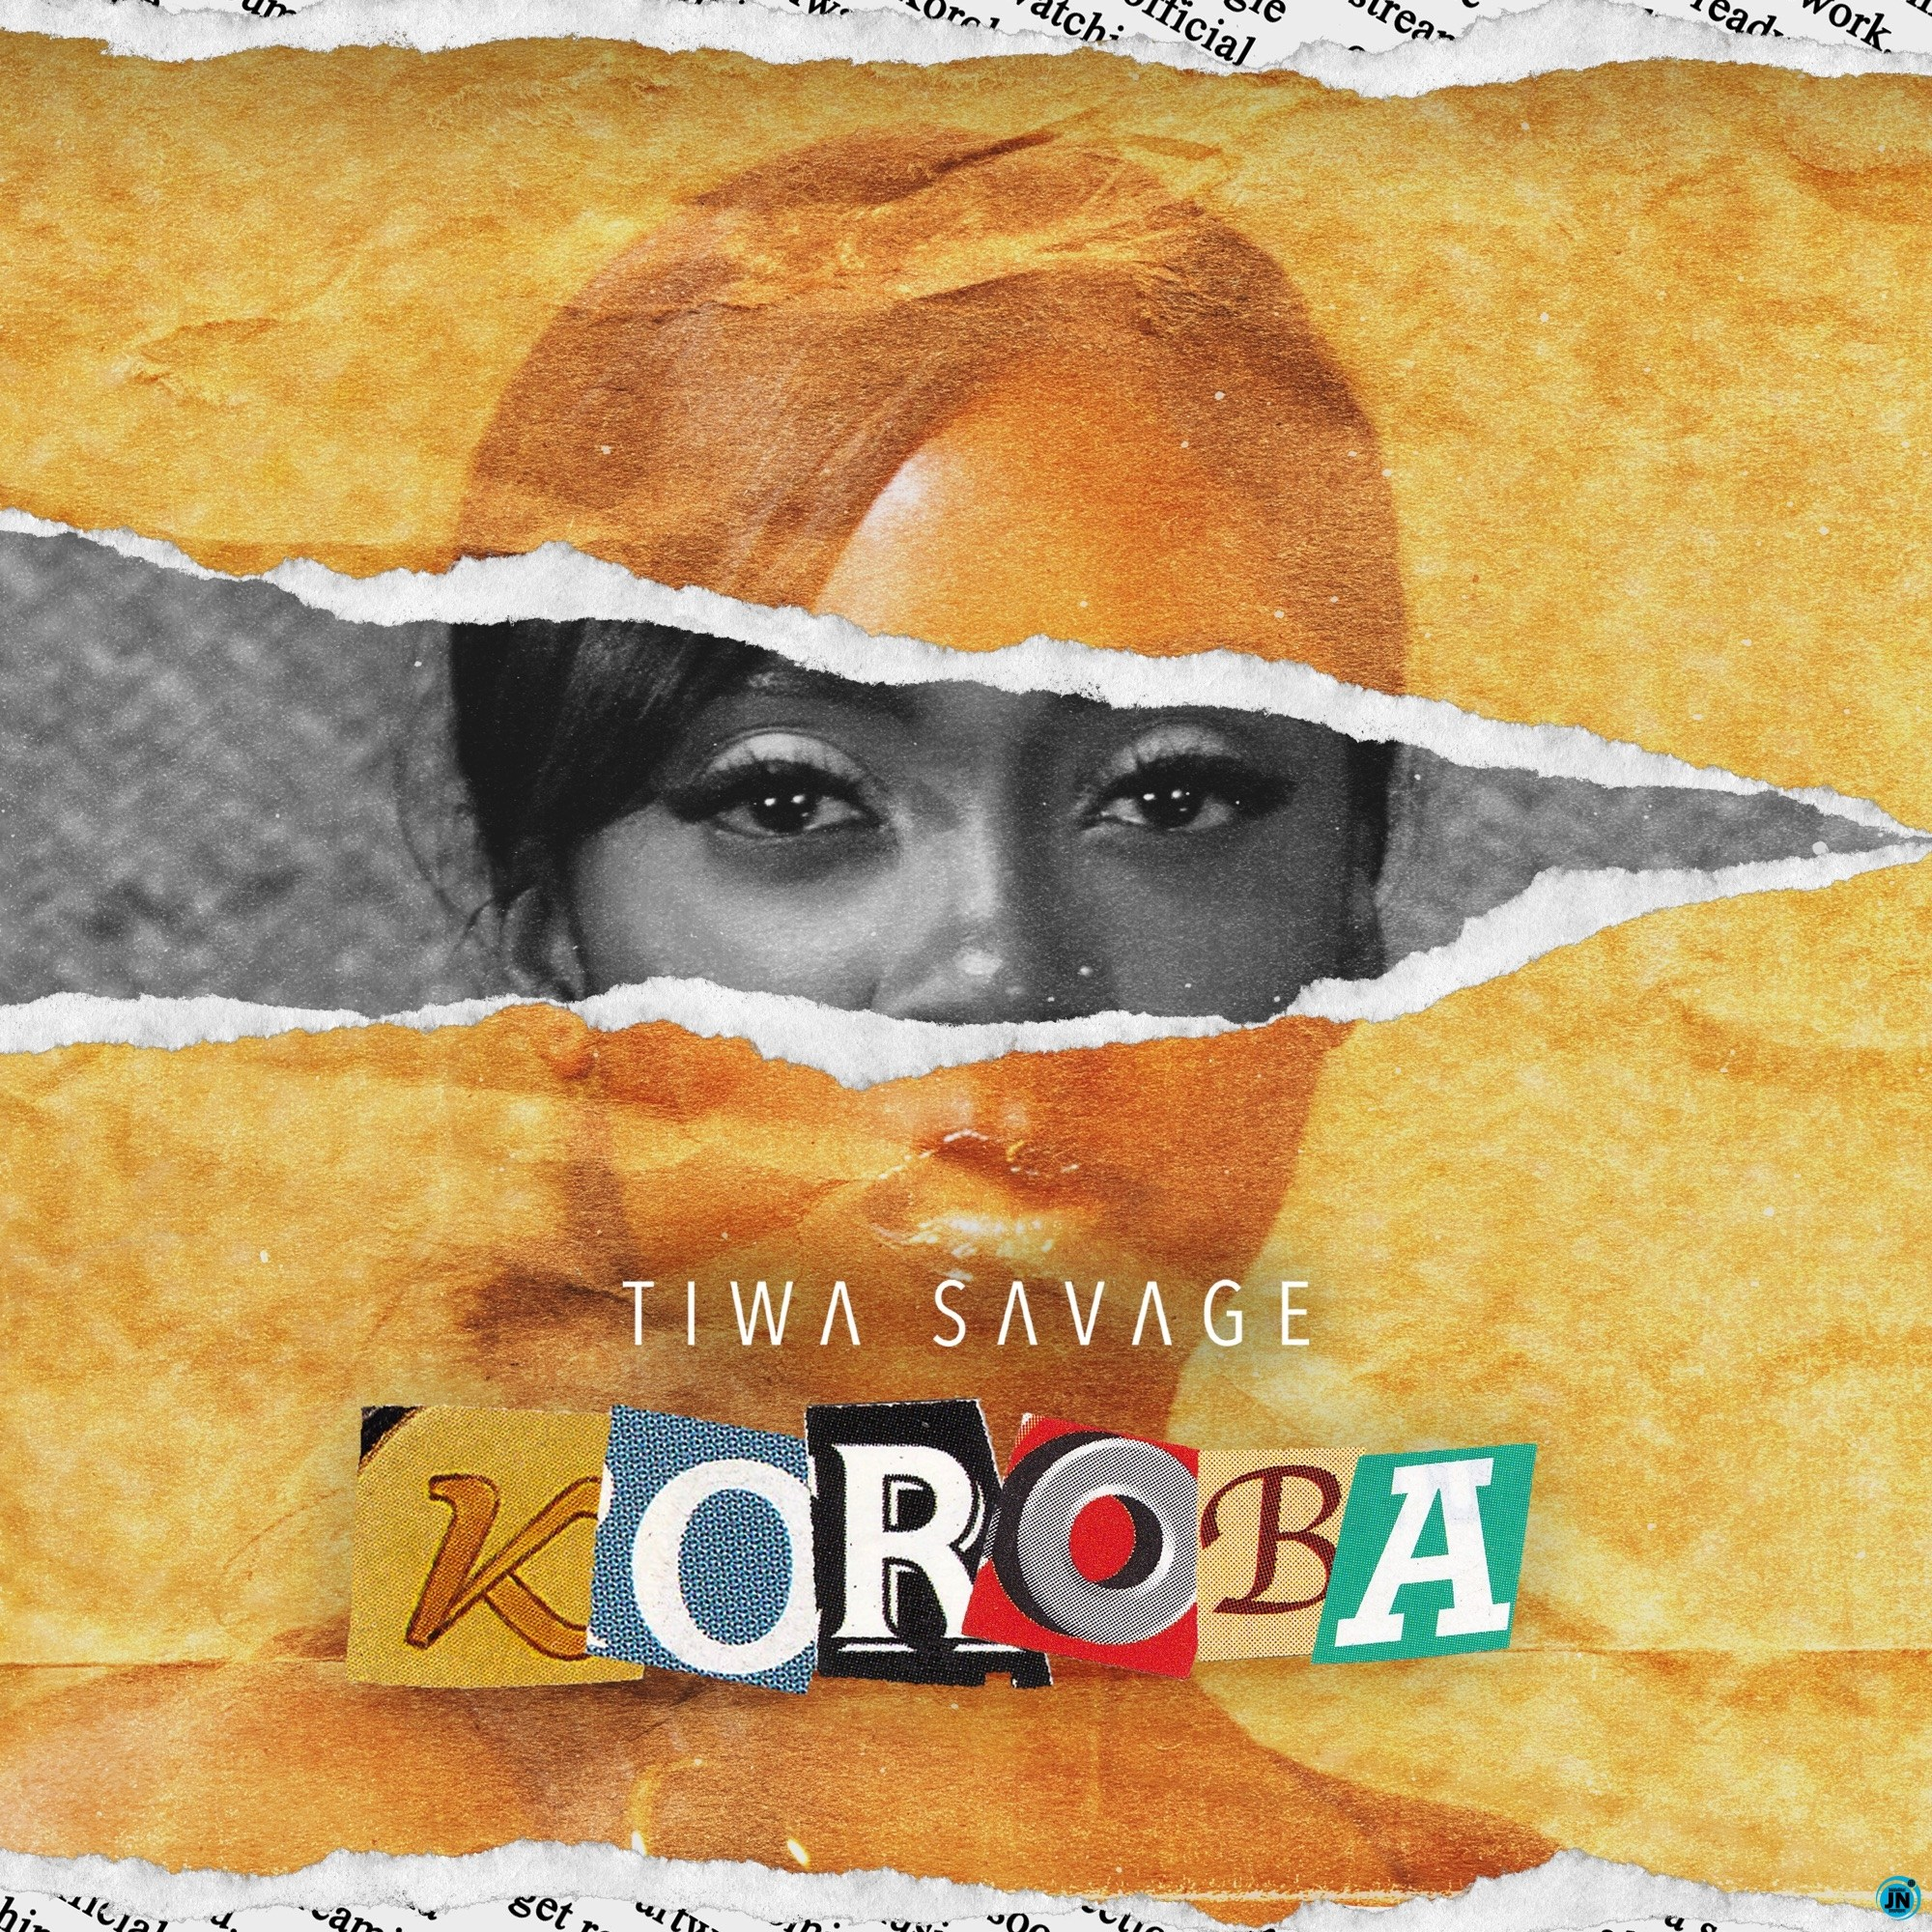 Tiwa Savage Koroba artwork